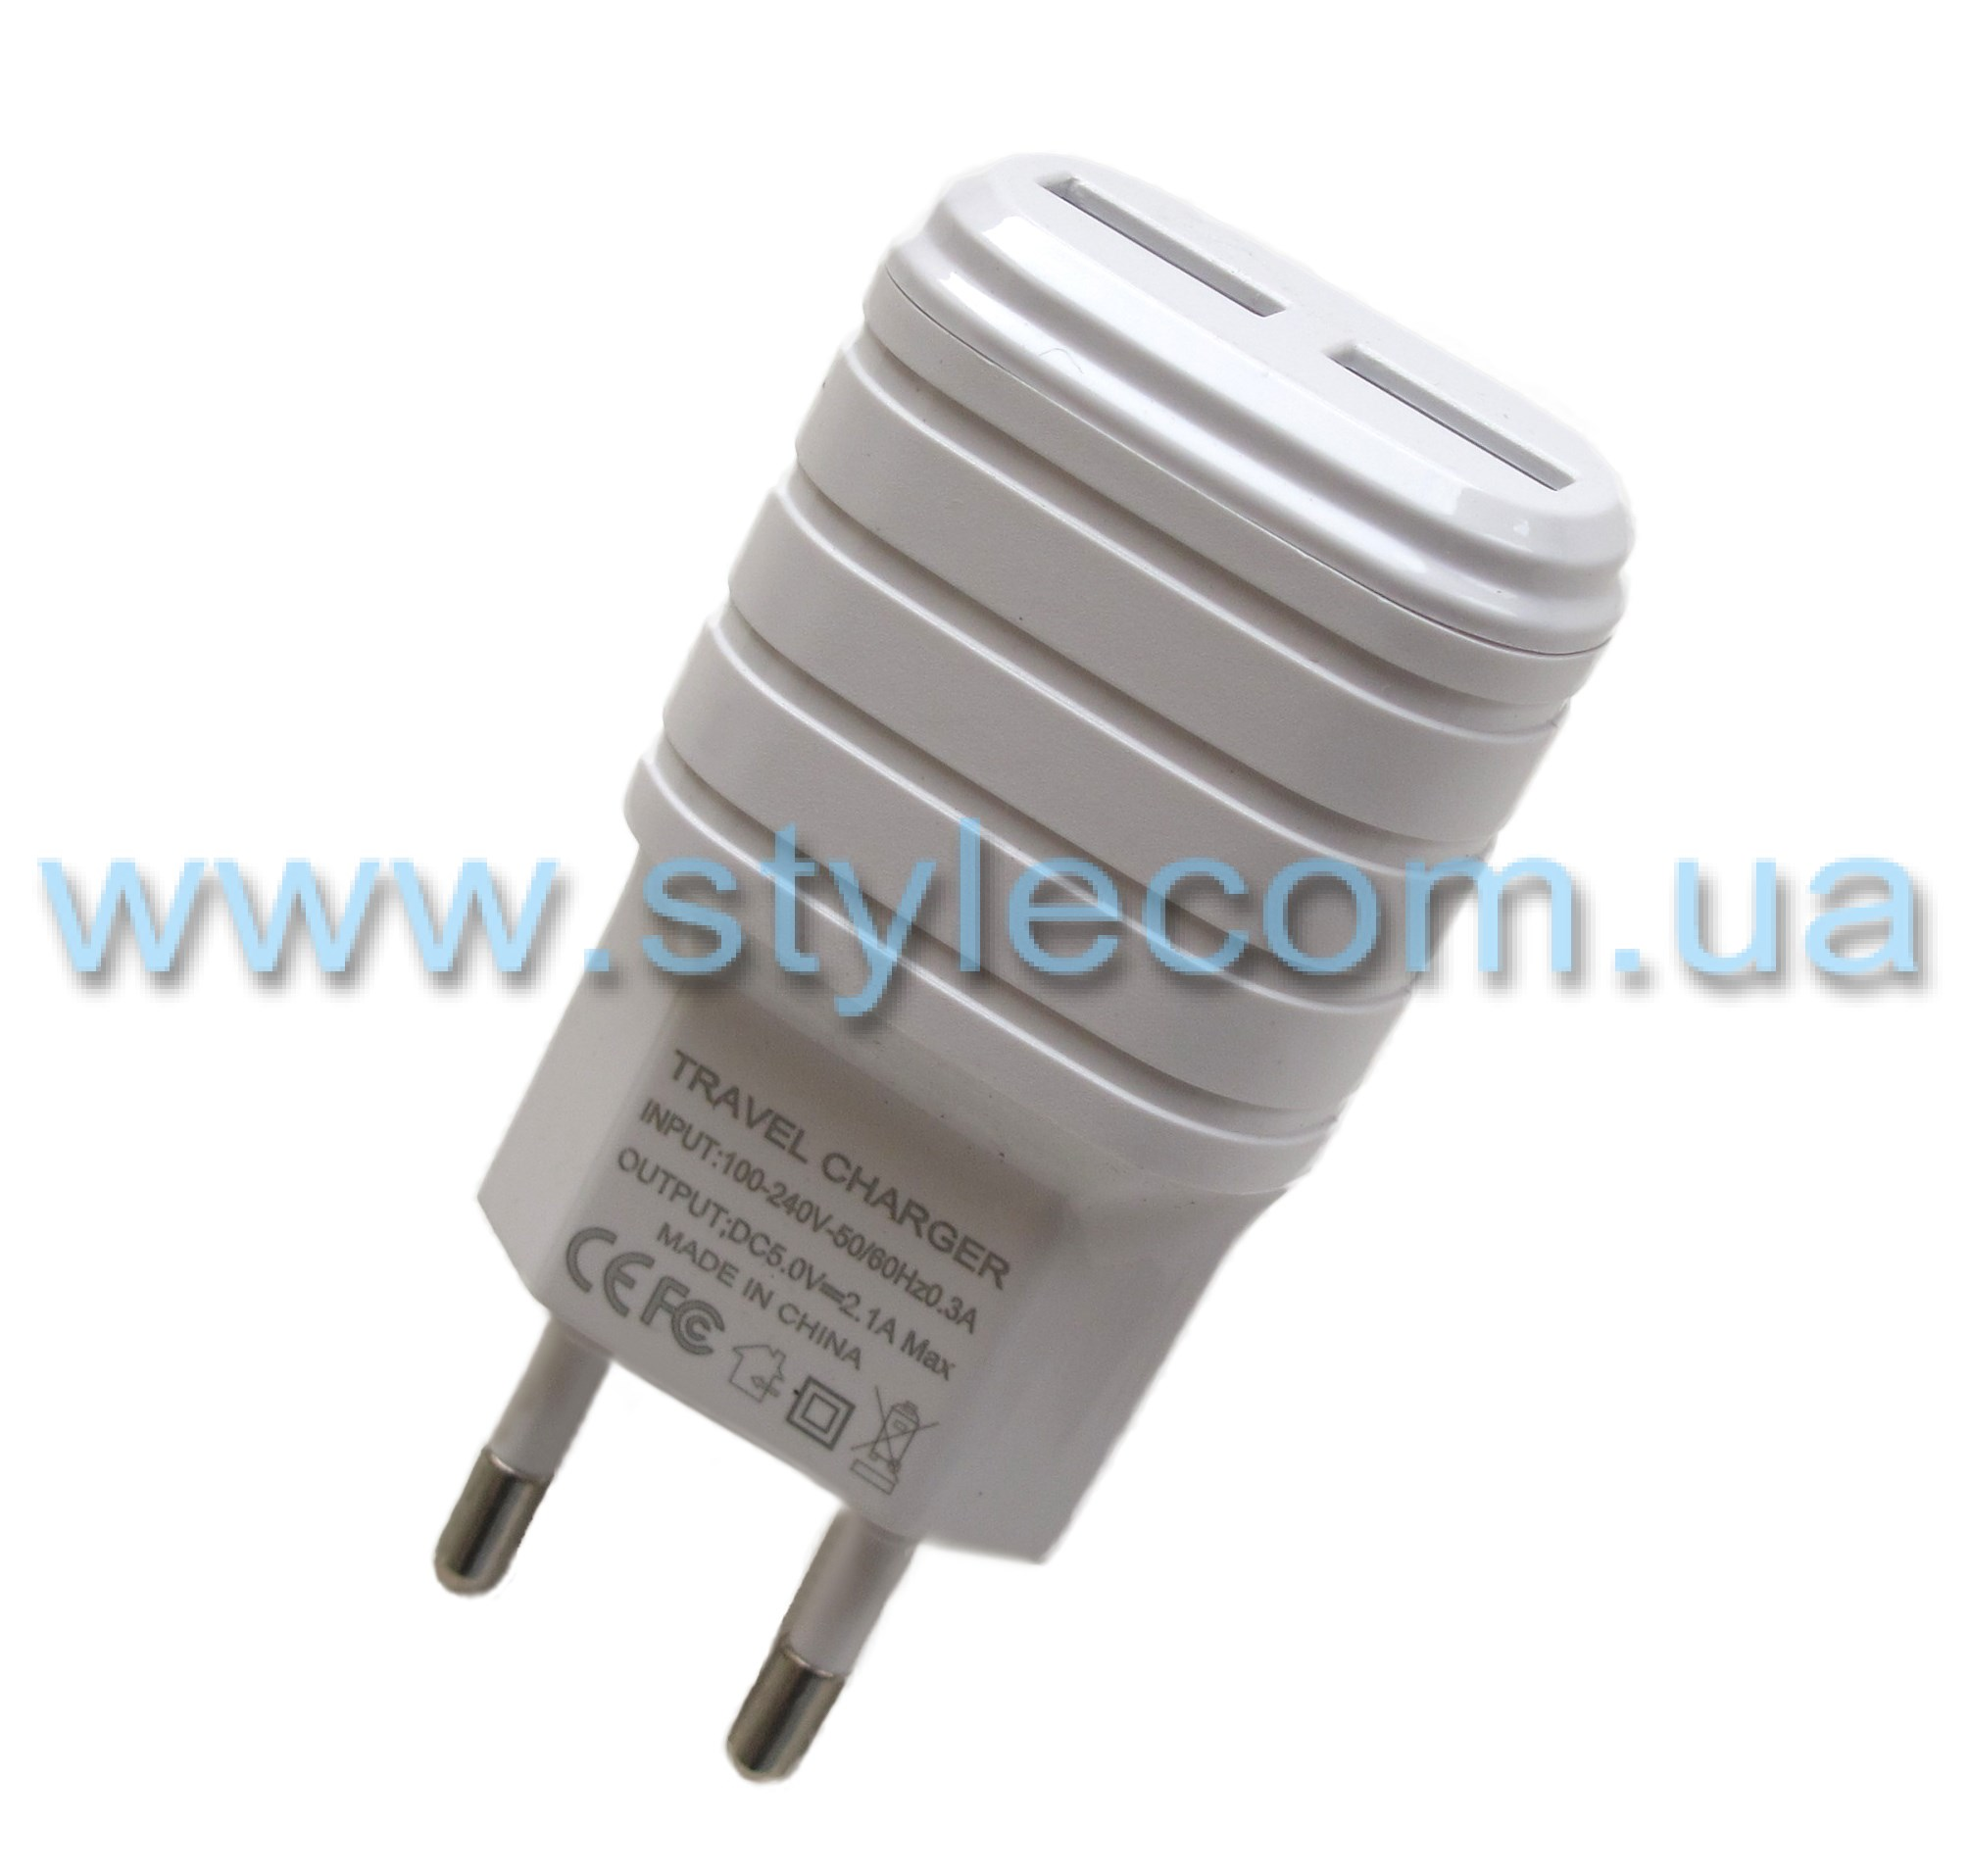 СЗУ CHARGER adapter 2USB 2.1A white - Фото 1